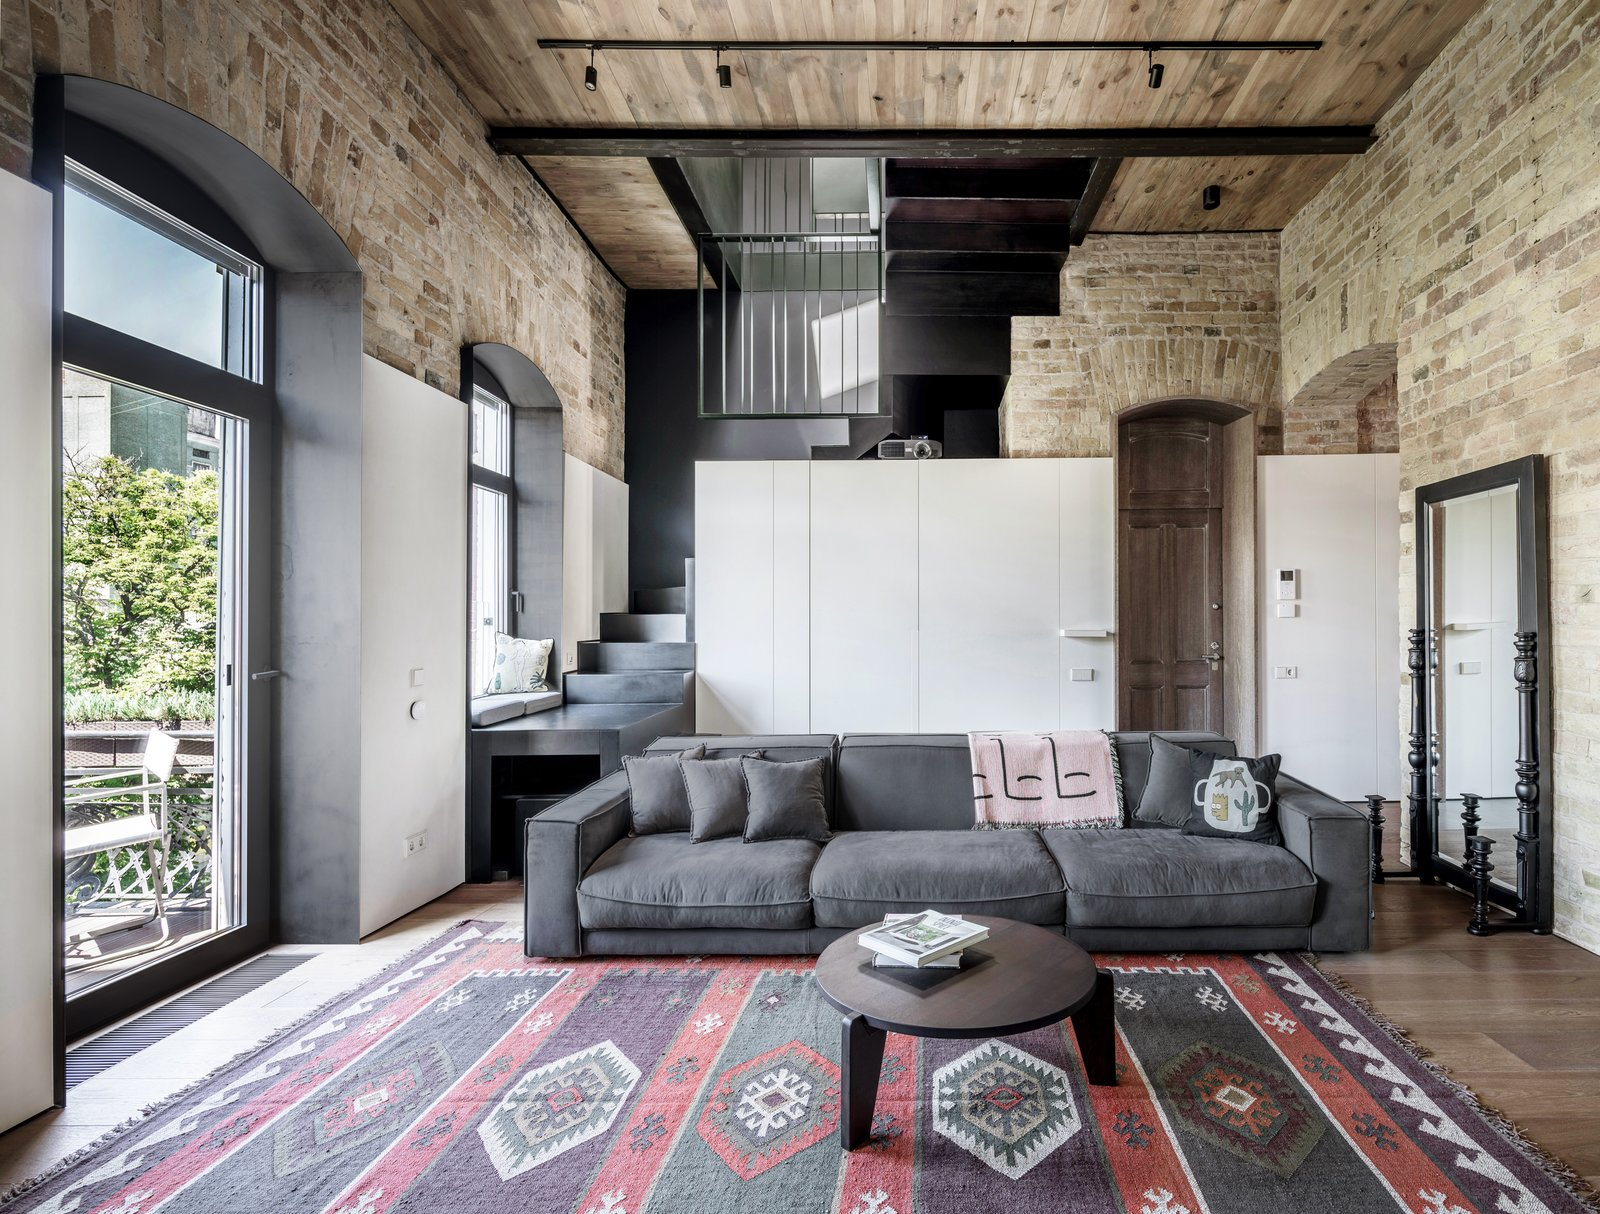 A Monochromatic Palette Unifies Old and New in This Ukrainian Bachelor Pad